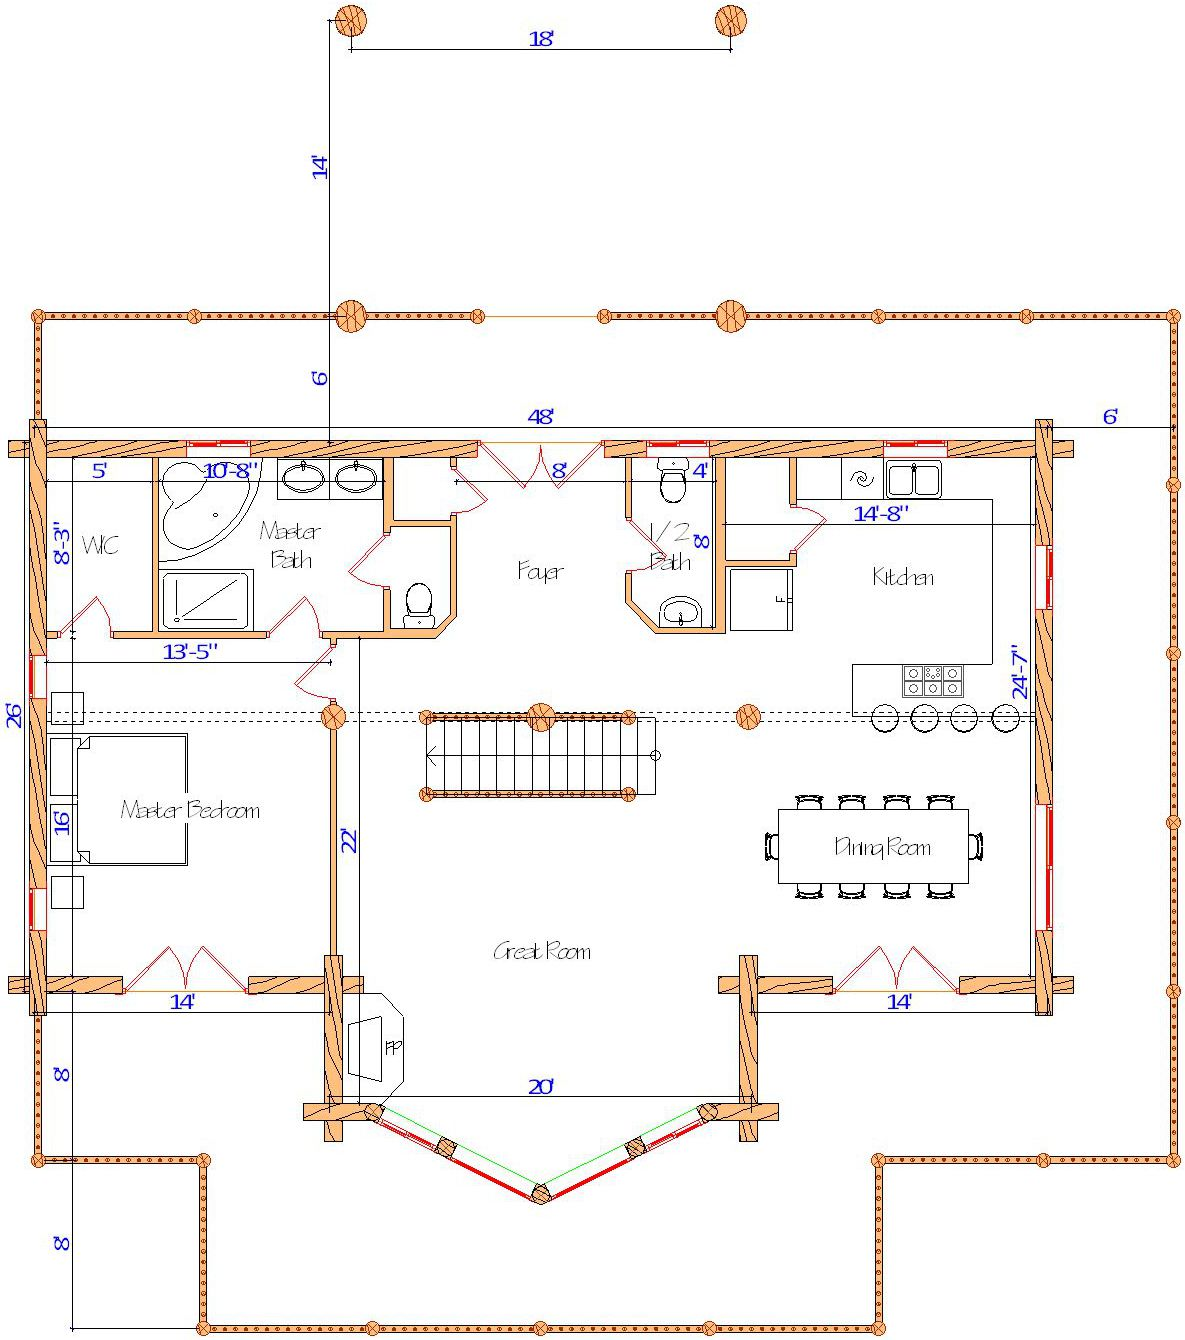 26x48 Cascade Hybrid Main floor plan super with drive under portico canada